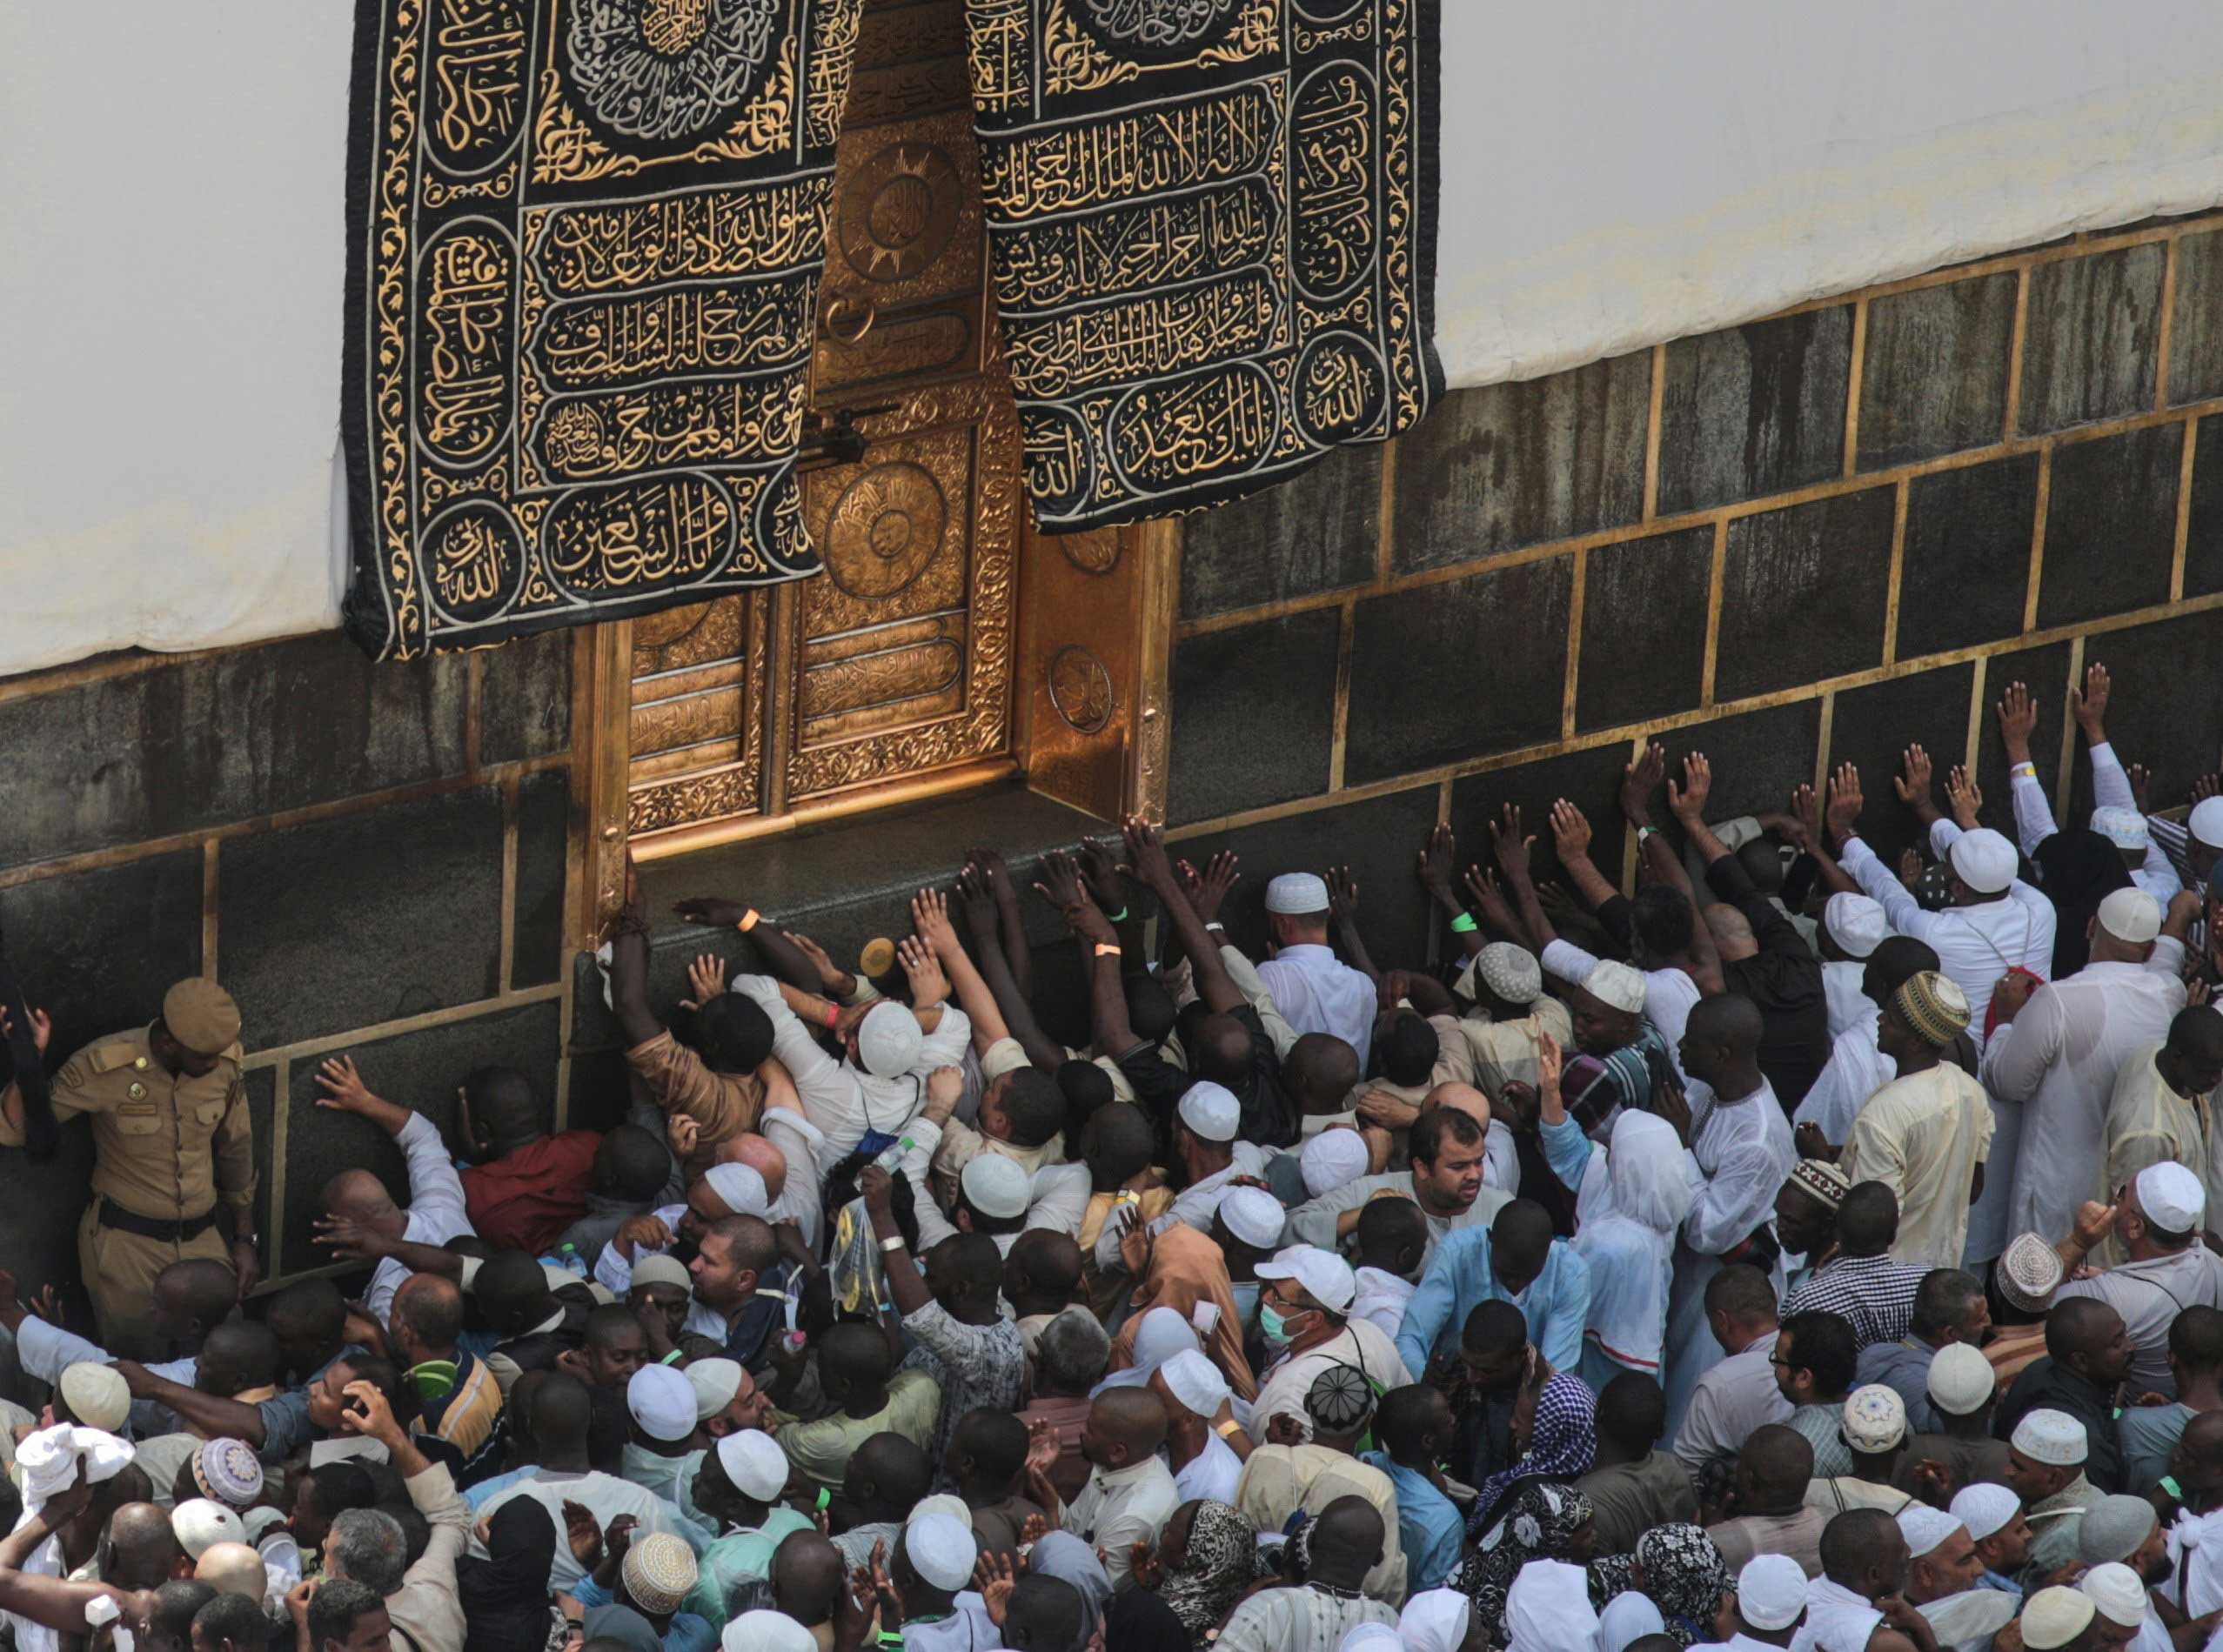 Muslim pilgrims pray at the Kaaba, the cubic building at the Grand Mosque in the Muslim holy city of Mecca, on Sept. 20, 2015.